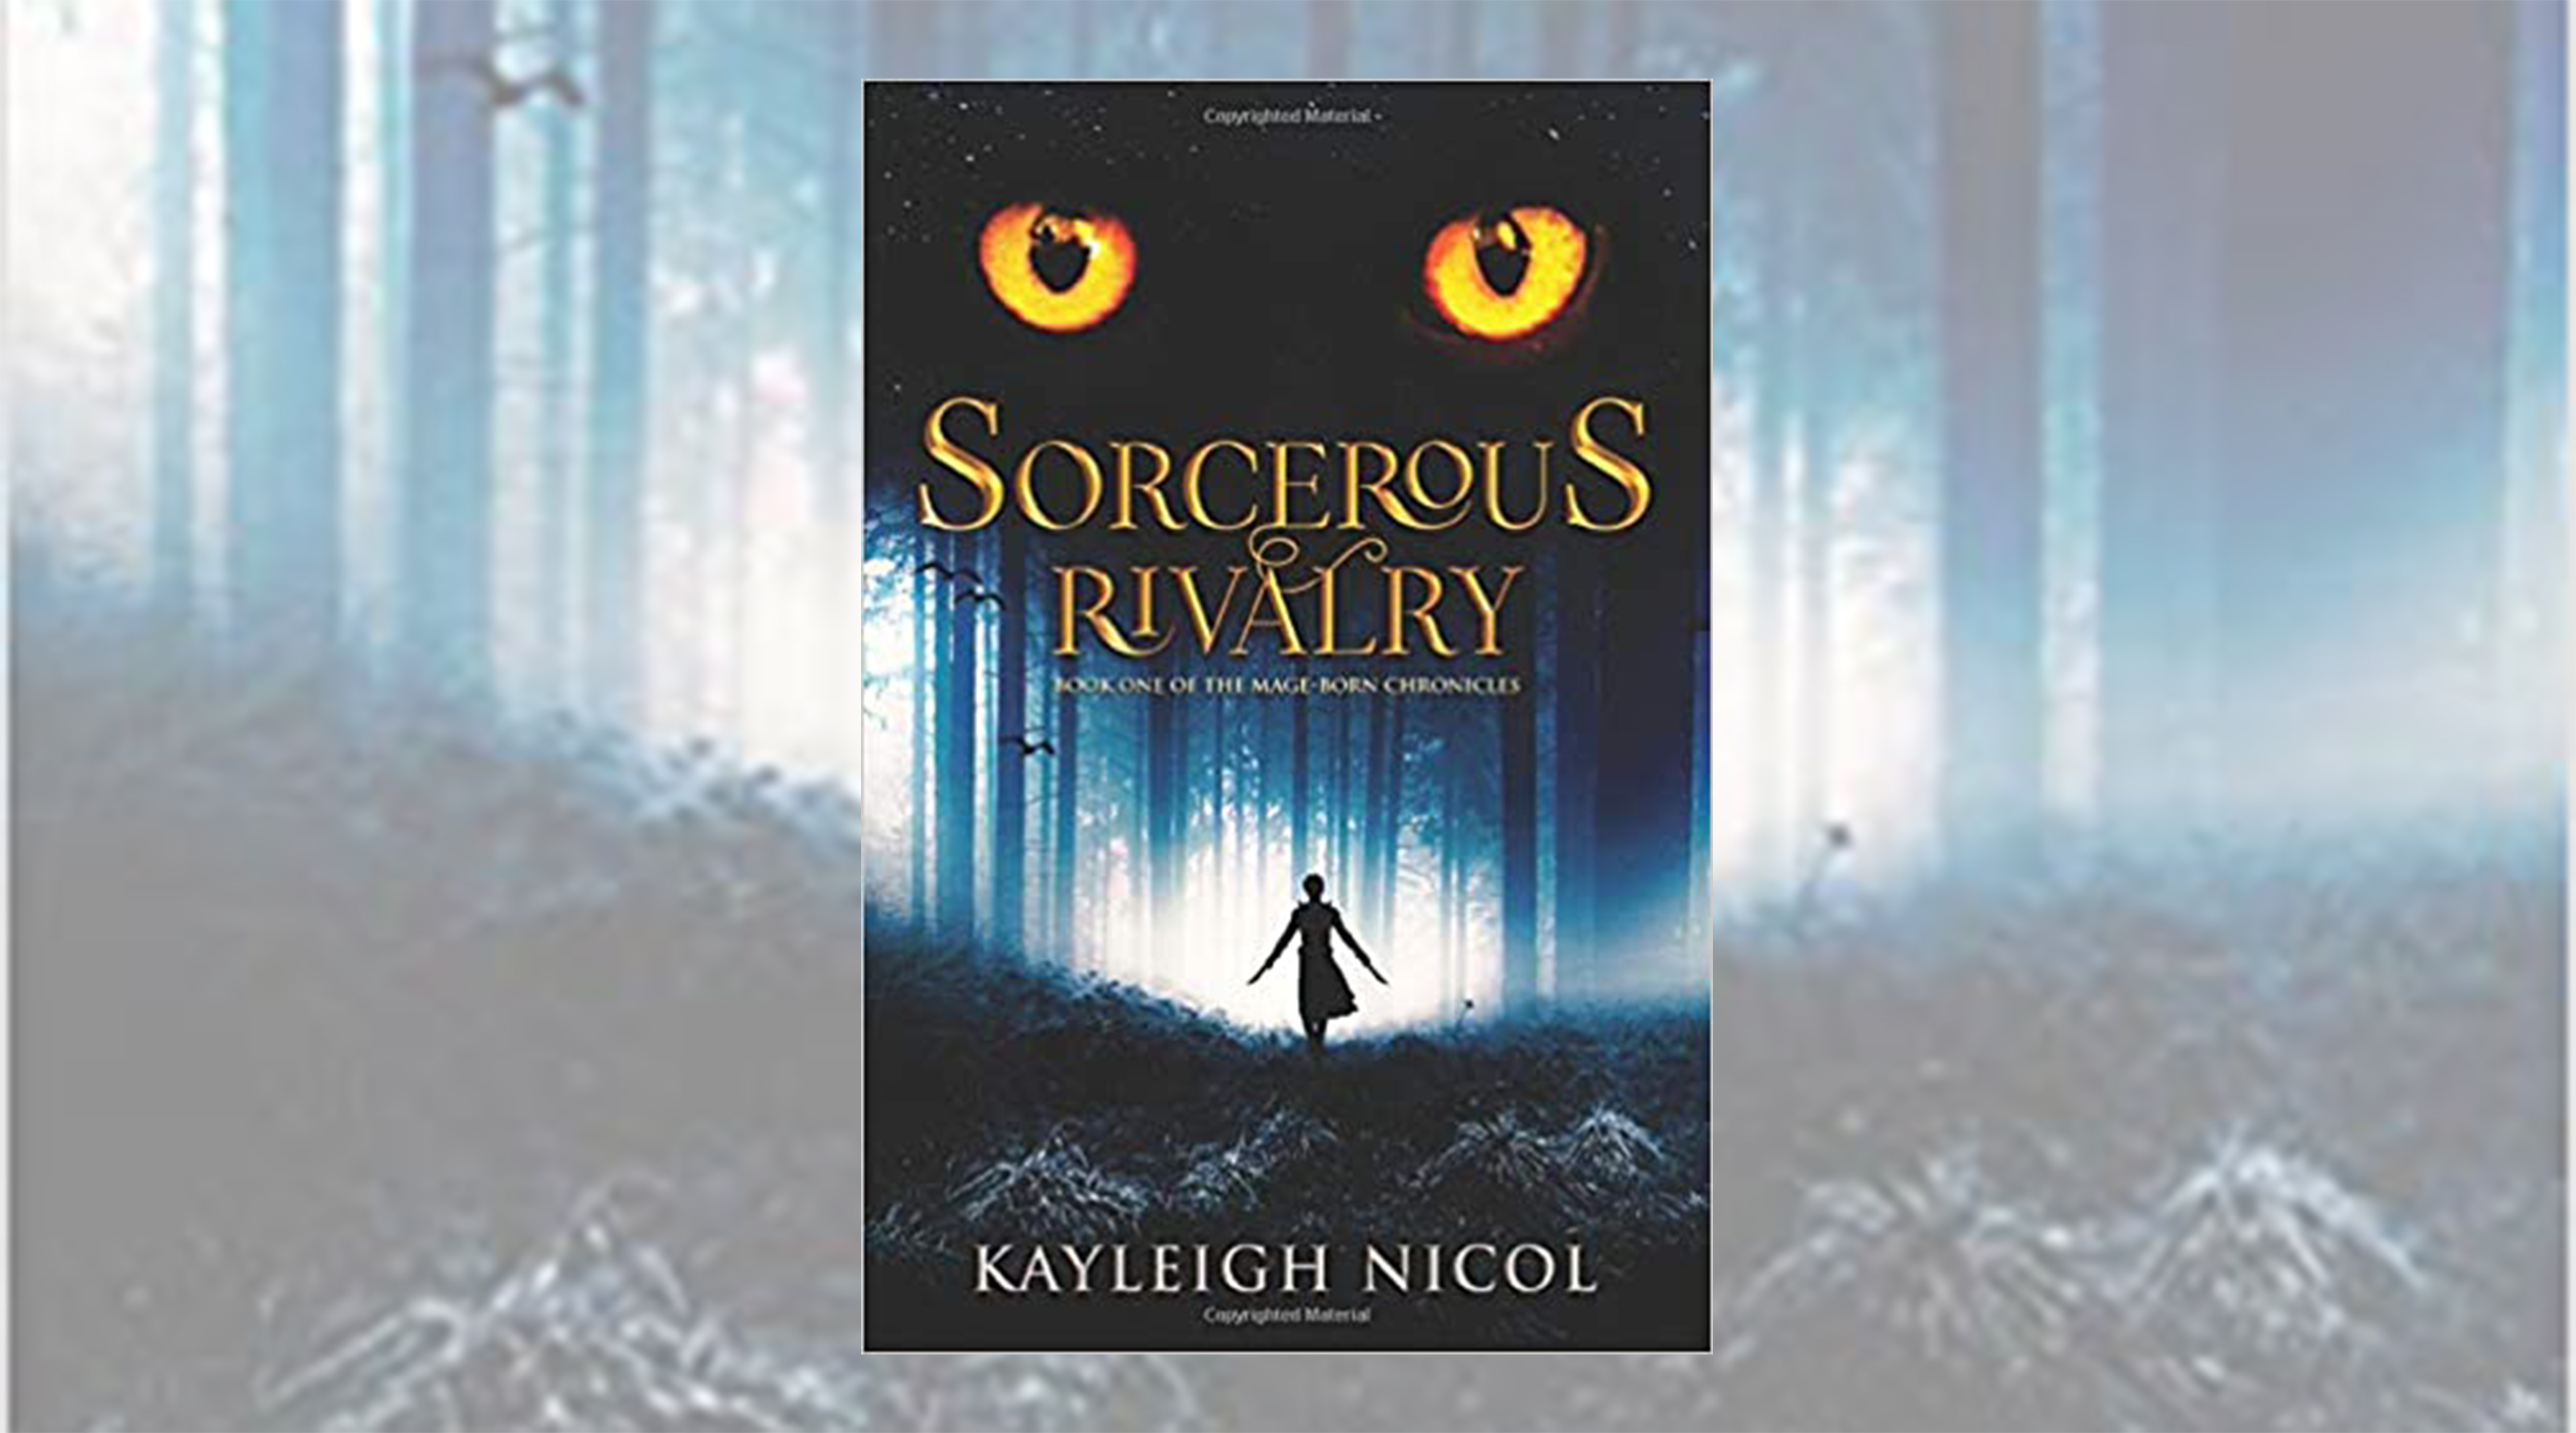 An Interview with Kayleigh Nicol